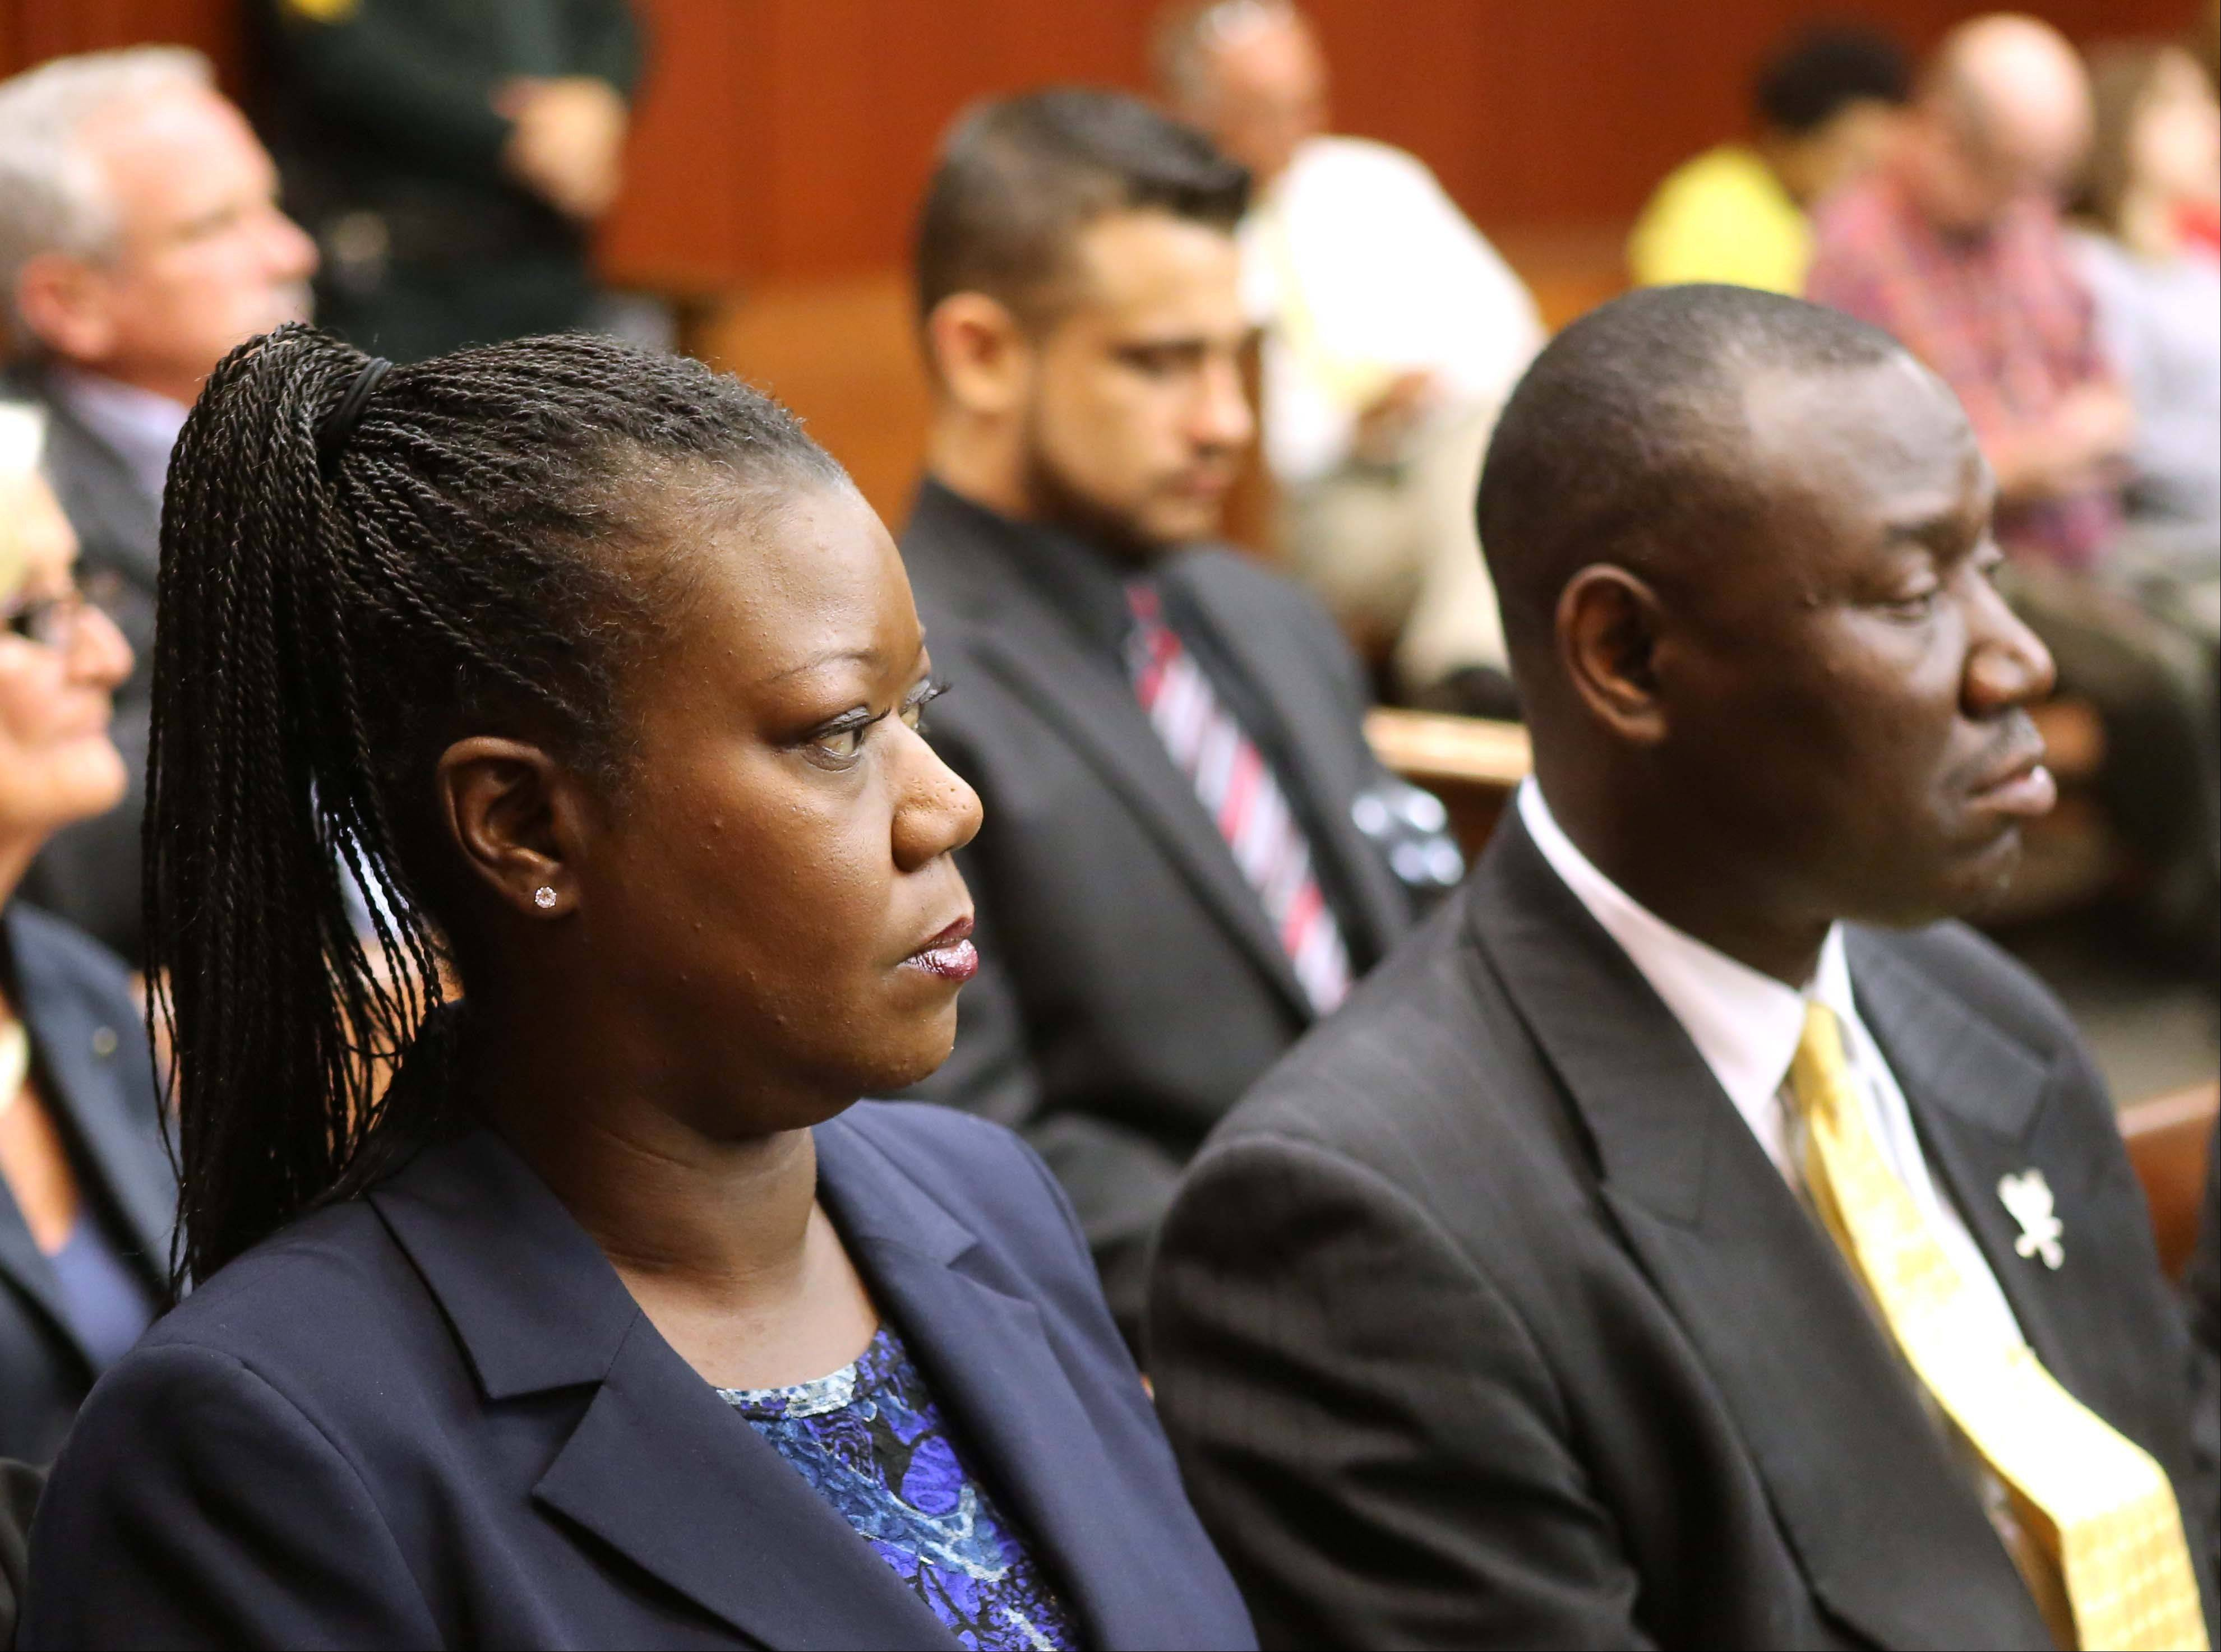 Sybrina Fulton, the mother shooting victim Trayvon Martin, sits with her attorney Benjamin Crump, during a pretrial hearing for George Zimmerman, the accused shooter of Trayvon Martin, Tuesday, May 28, 2013 in Sanford, Fla. Zimmerman has been charged with second-degree murder for the 2012 shooting death of Trayvon Martin. He was not in court for the hearing.